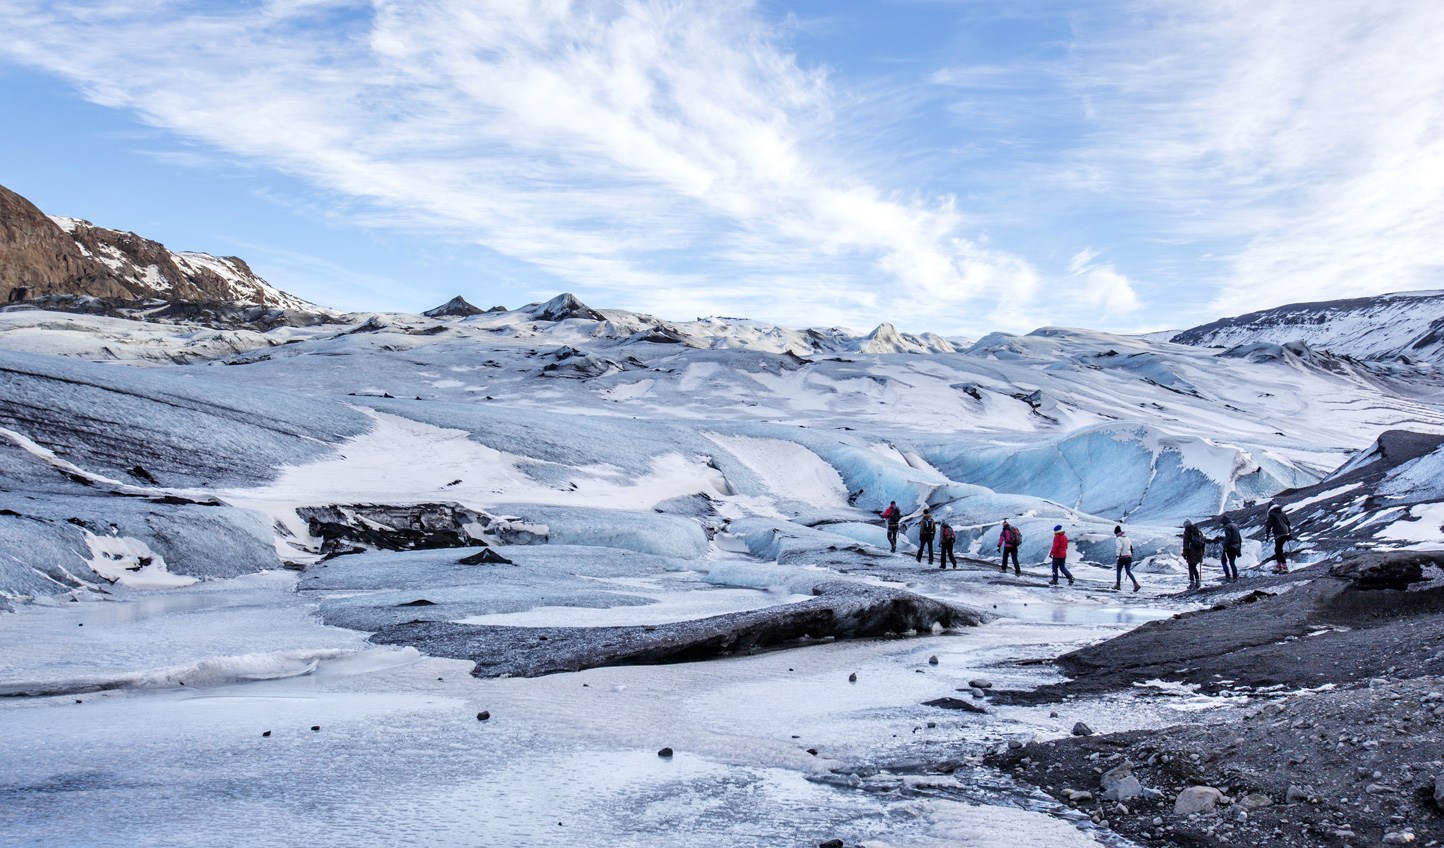 Discover a land of glaciers at Sólheimajökull